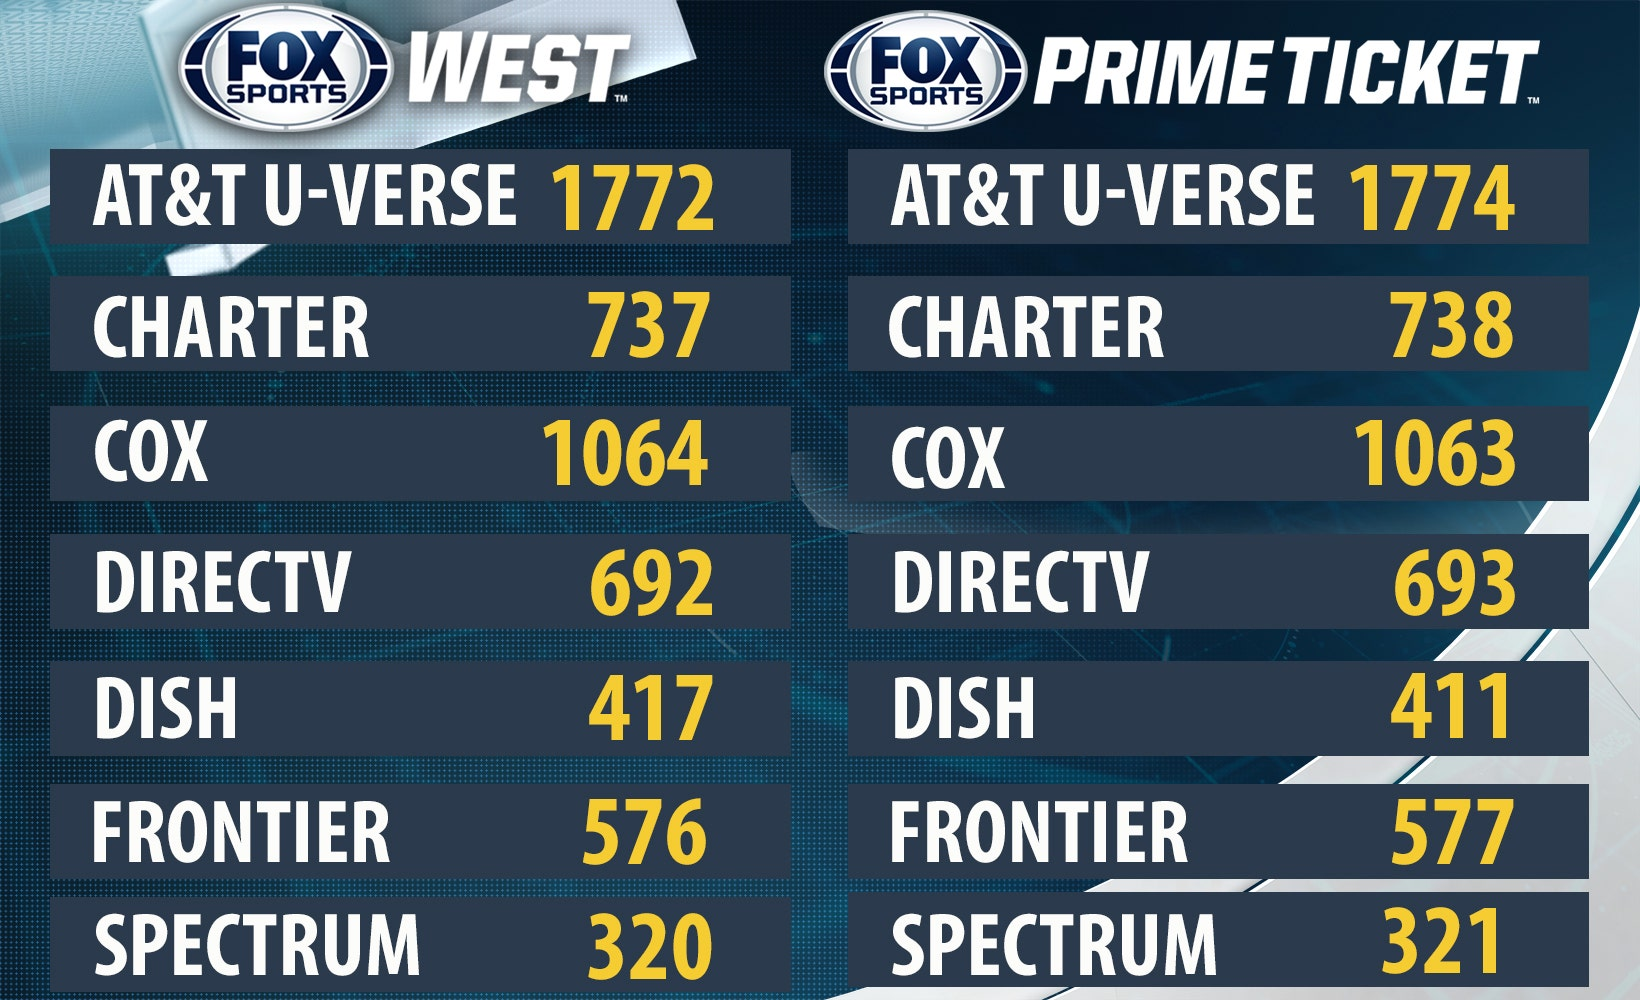 Channel listings for FOX Sports West and Prime Ticket | FOX Sports